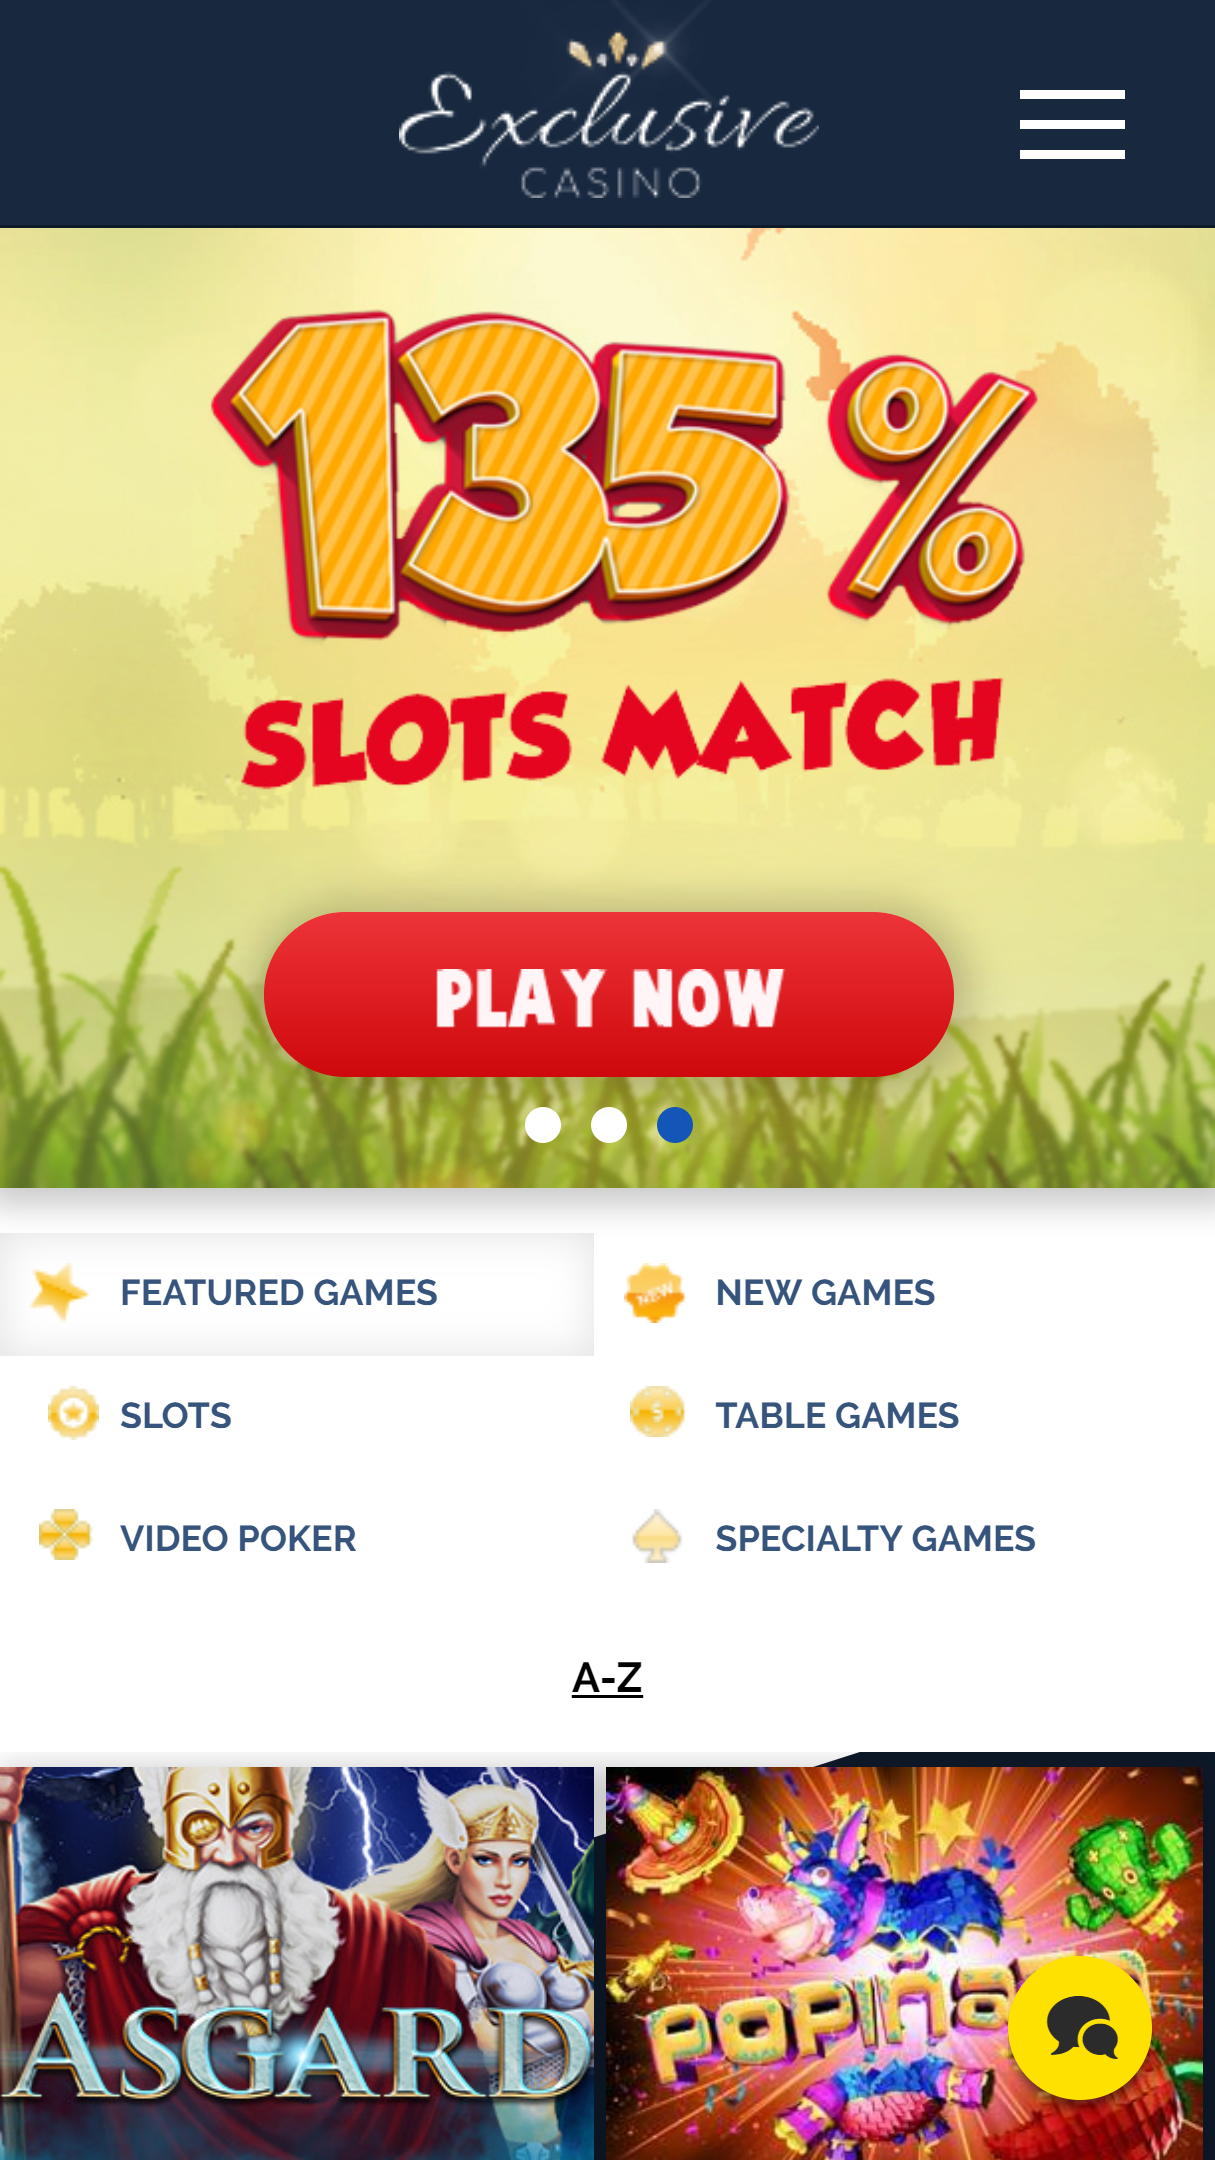 Exclusive Casino App Homepage